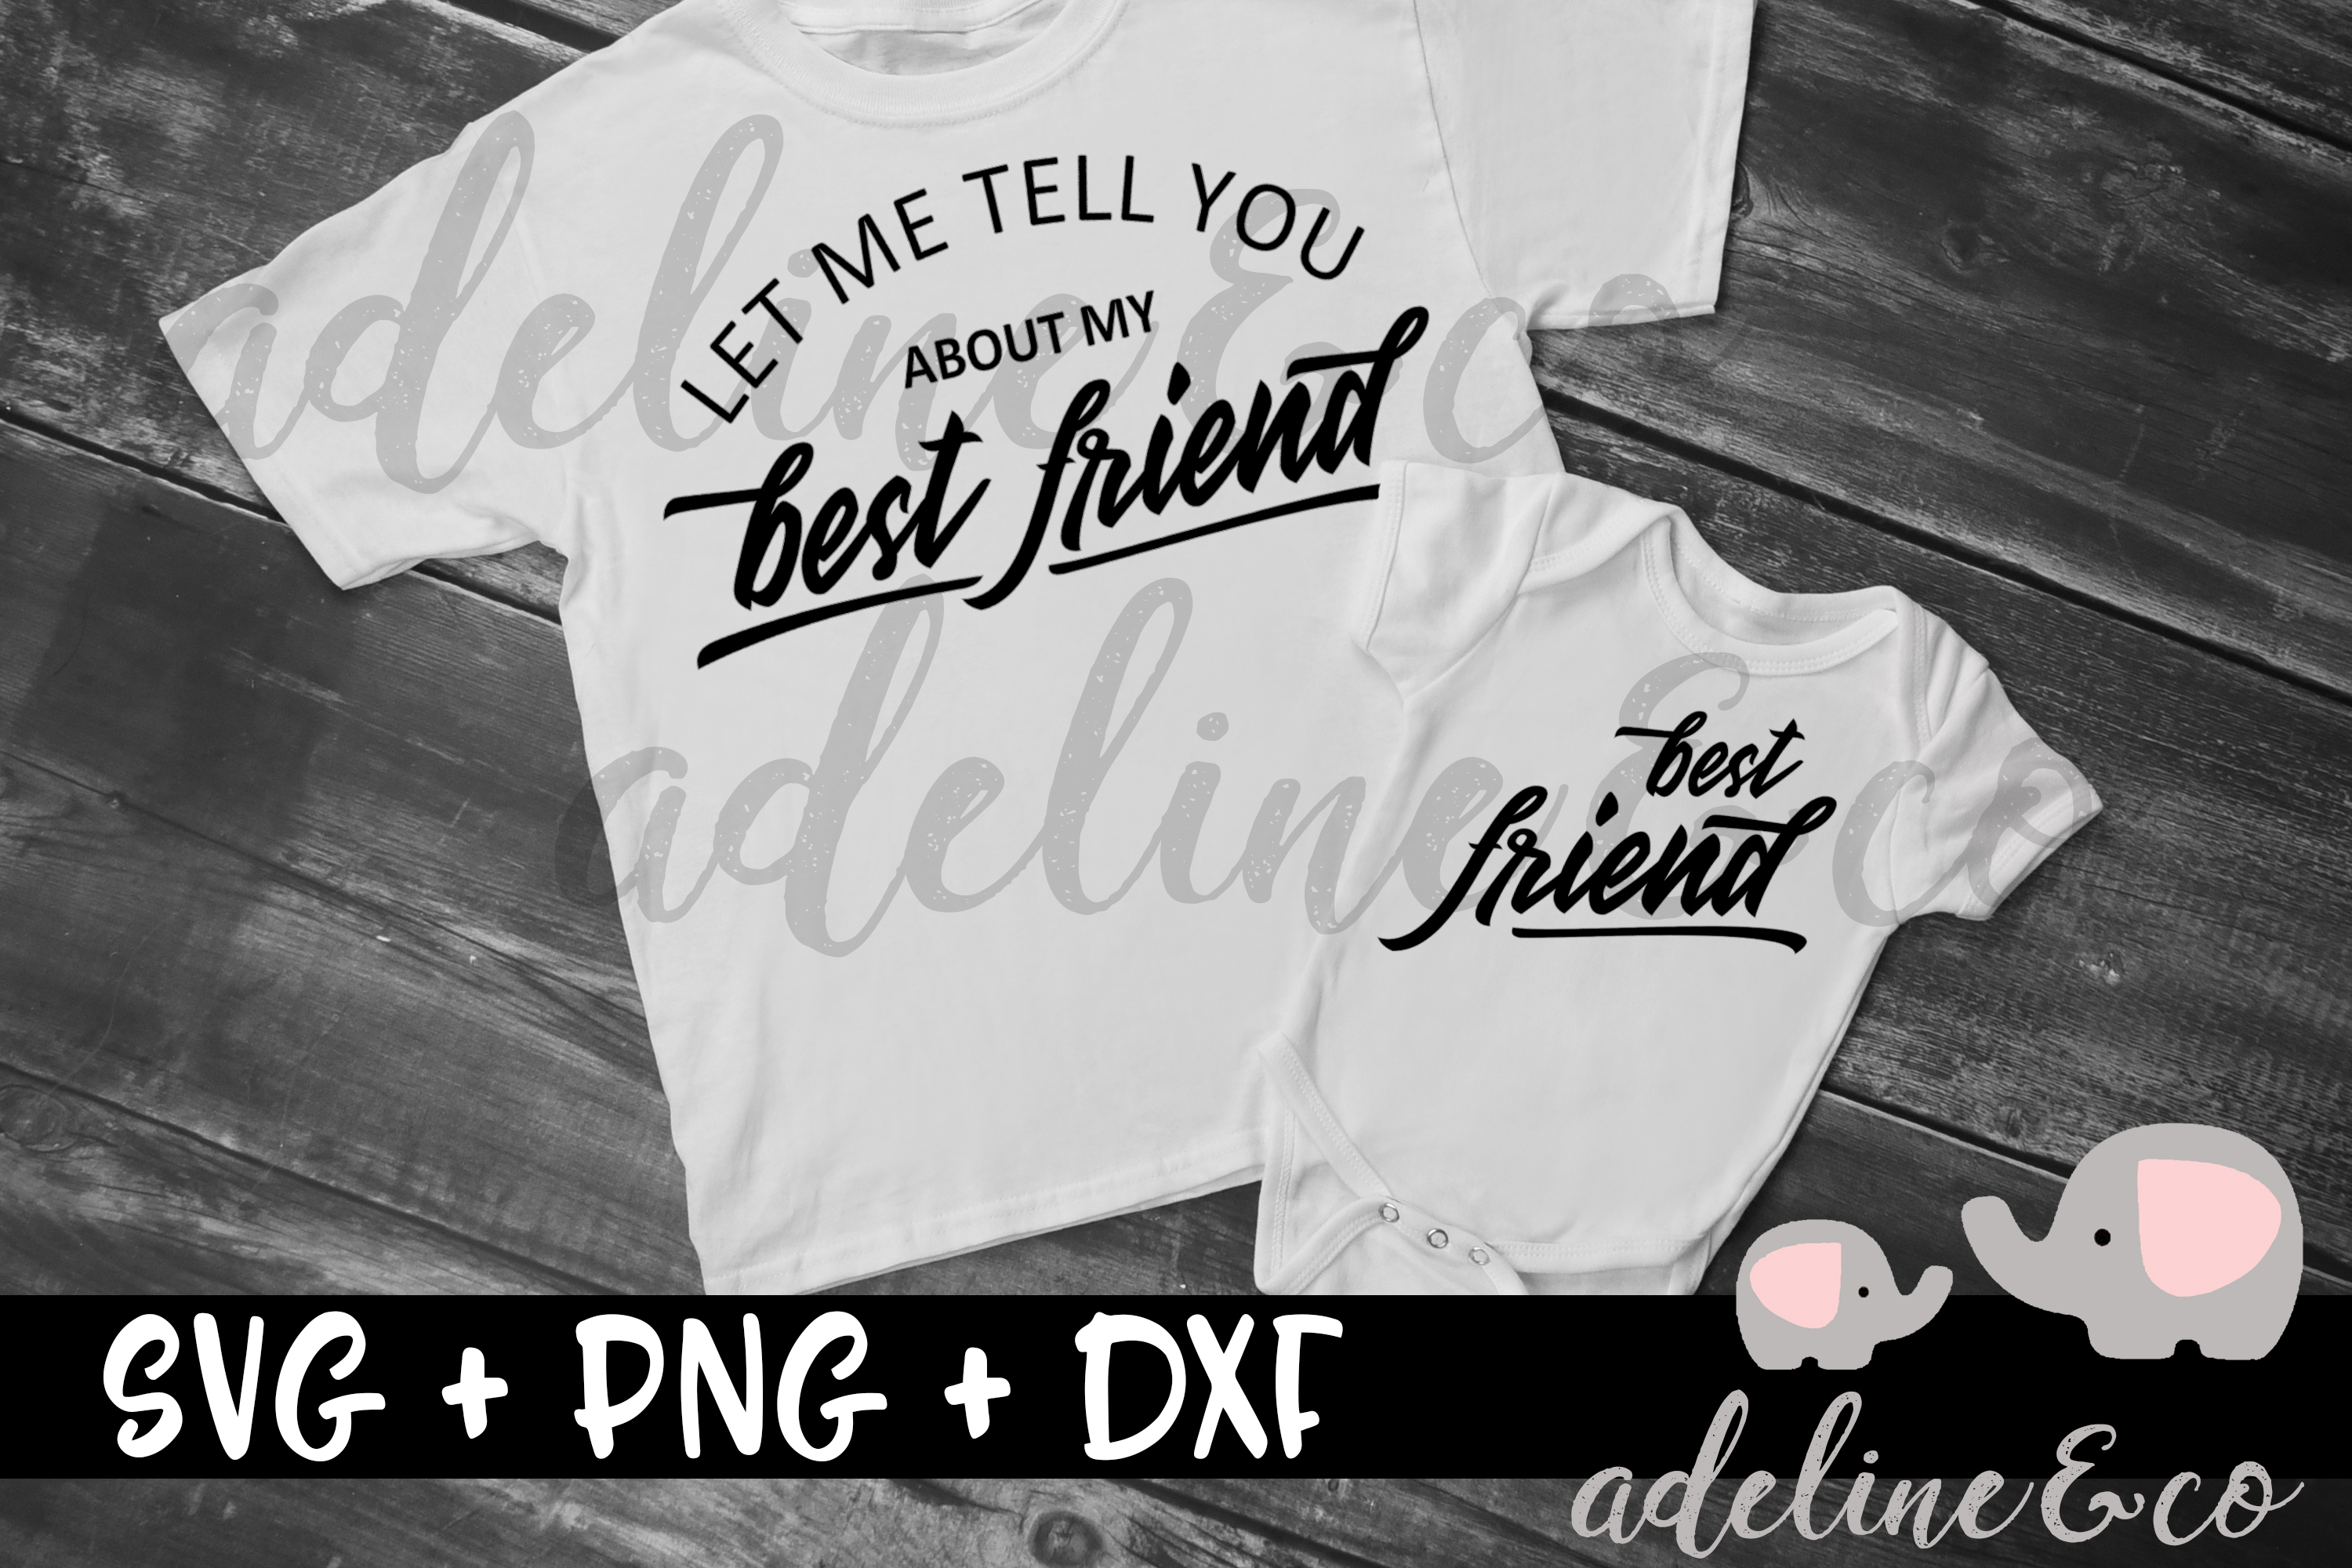 Download Free Let Me Tell You About My Best Friend Graphic By Adelinenco for Cricut Explore, Silhouette and other cutting machines.